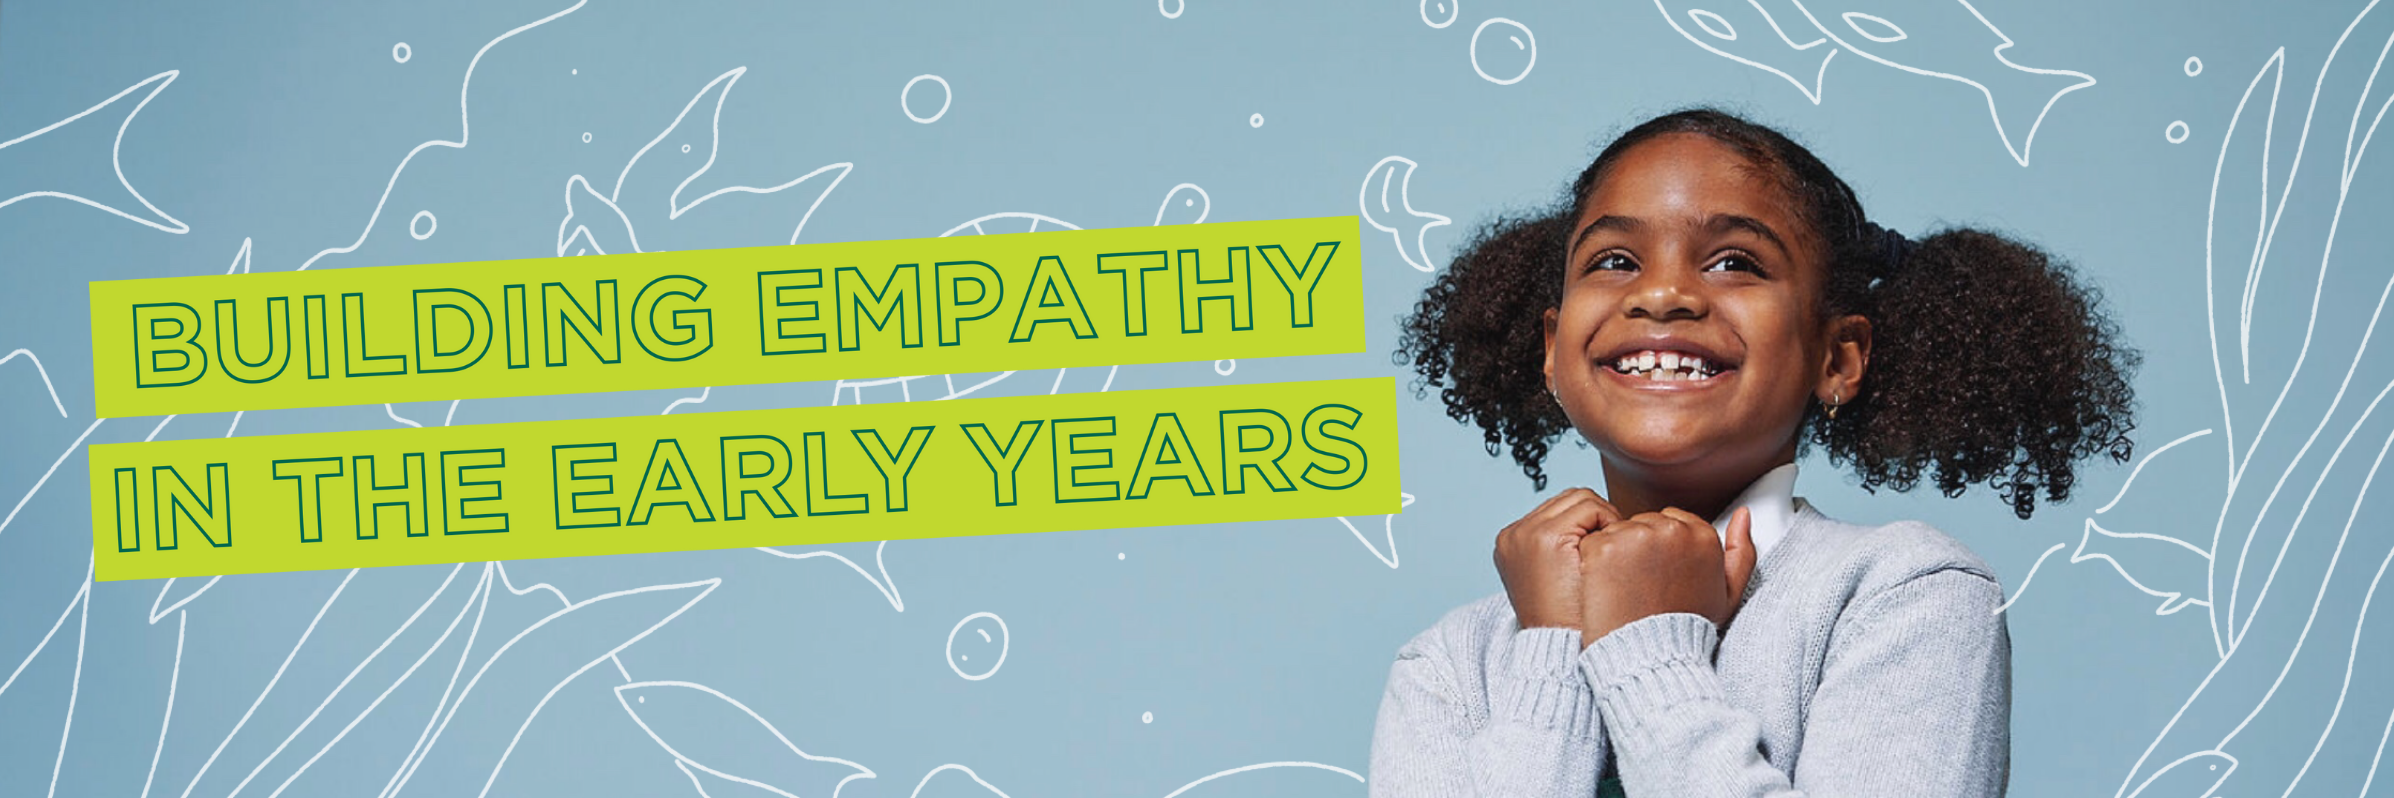 Building Empathy in the Early Years